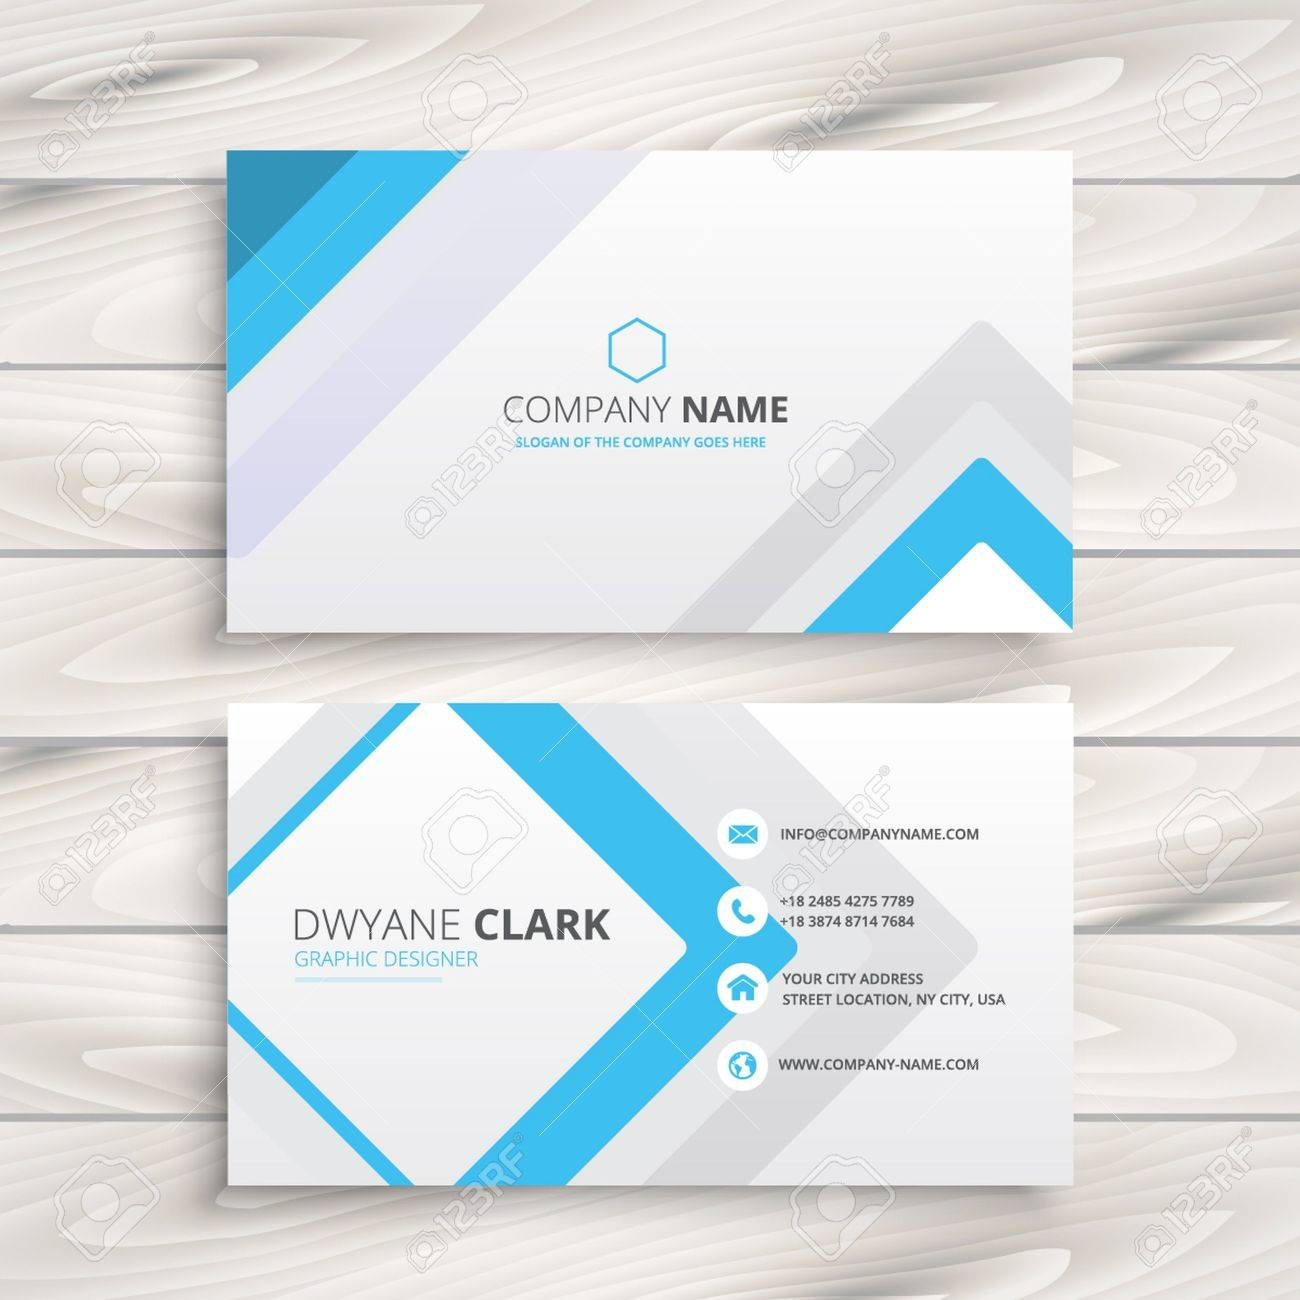 Minimal Design Business Cards Image collections - Free Business Cards